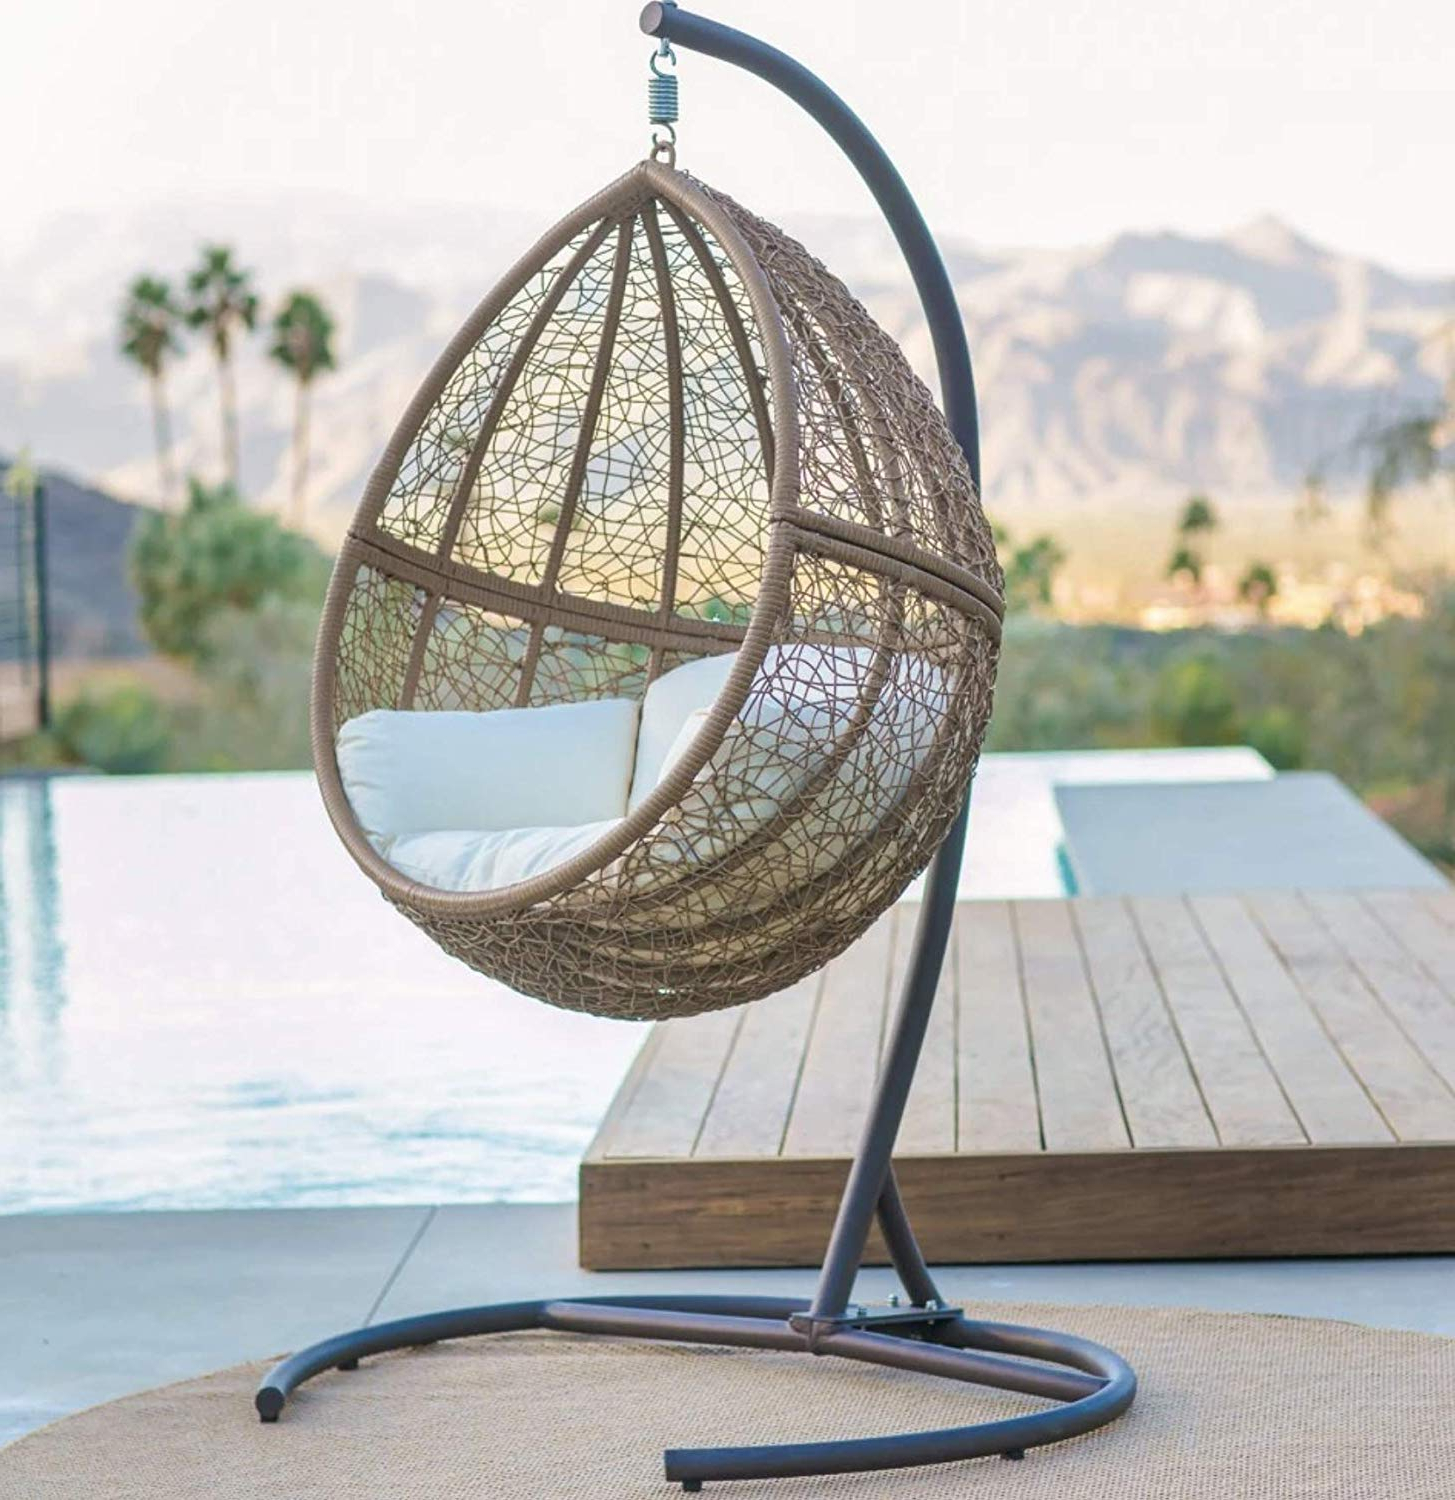 Fashionable Outdoor Wicker Plastic Tear Porch Swings With Stand For Amazon: Light Brown Boho Chic Resin Wicker Hanging Egg (Gallery 20 of 30)